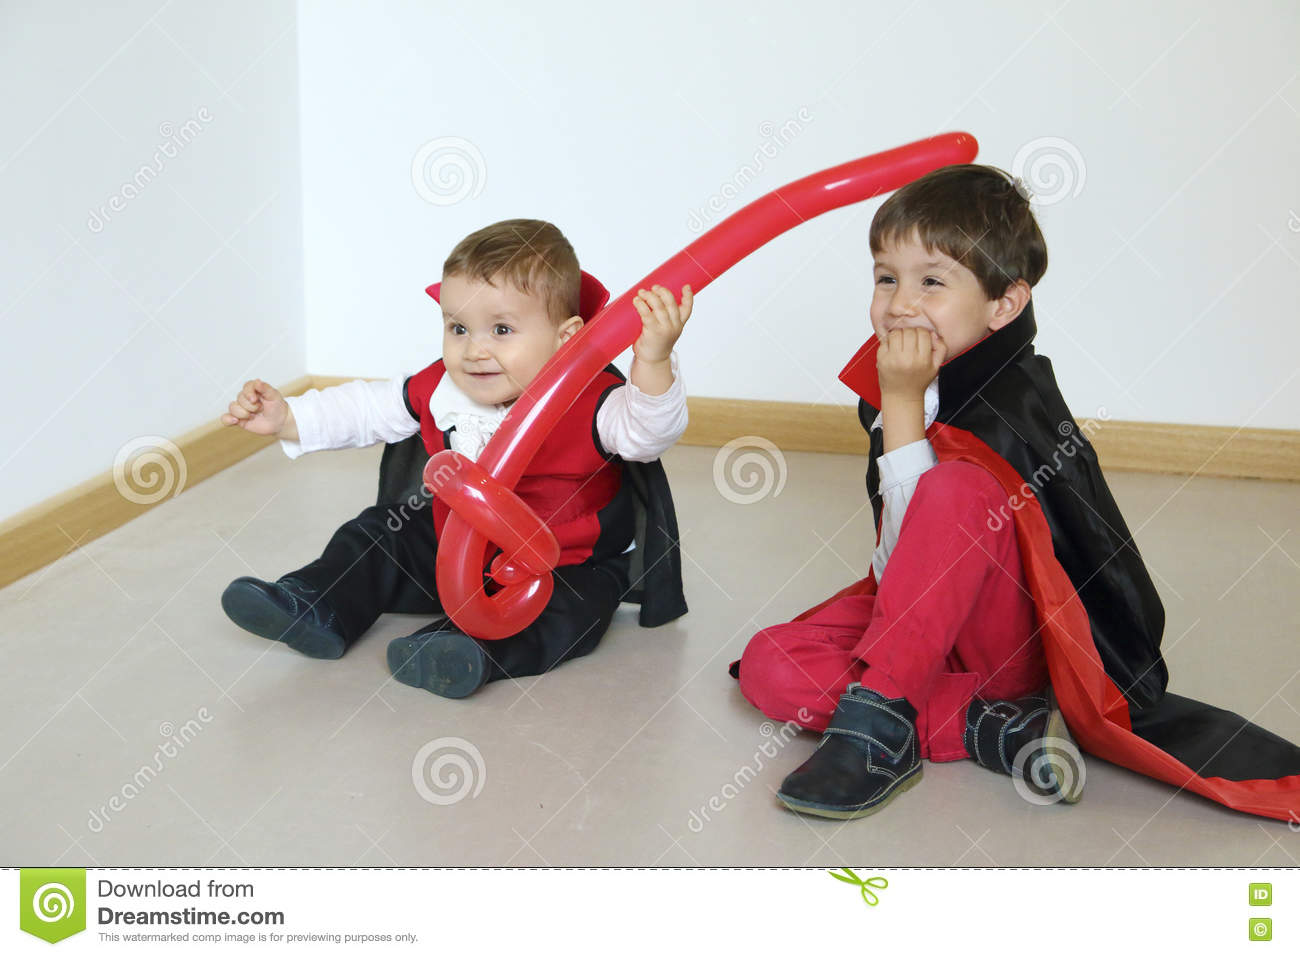 Two kids with vampire costume enyoing in a party